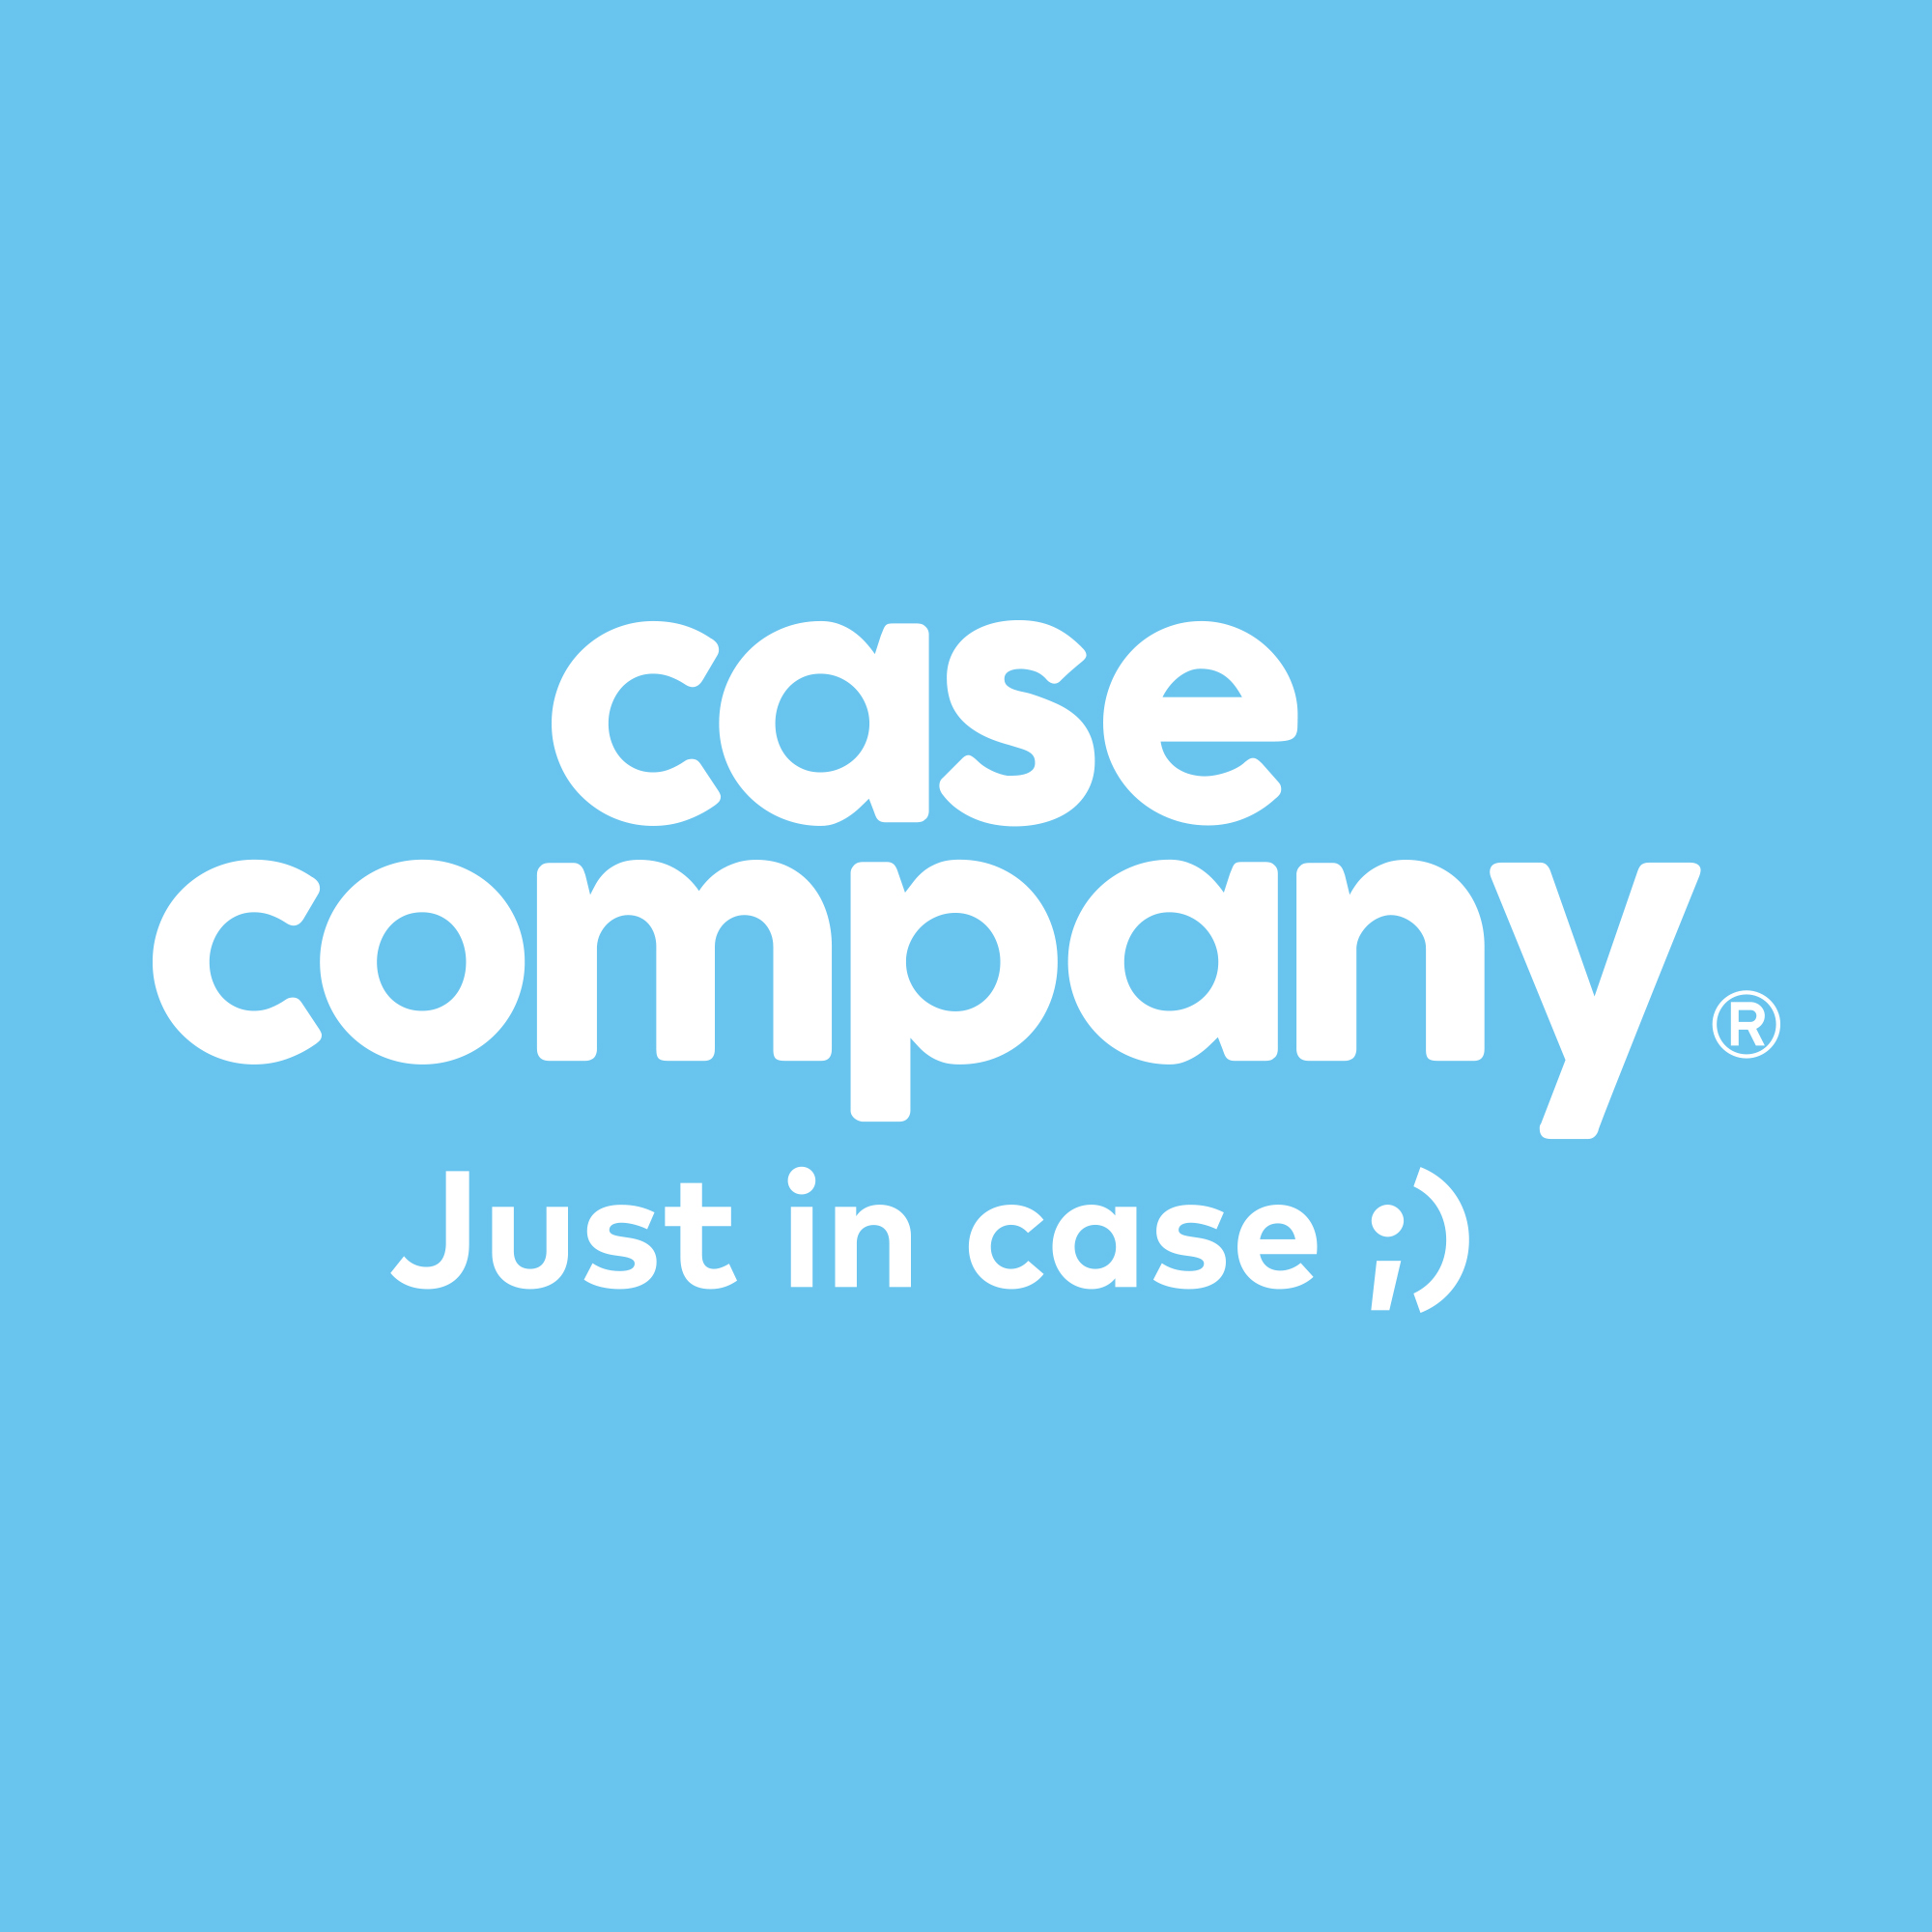 Code promo CaseCompany : CaseCompany coupon de réduction